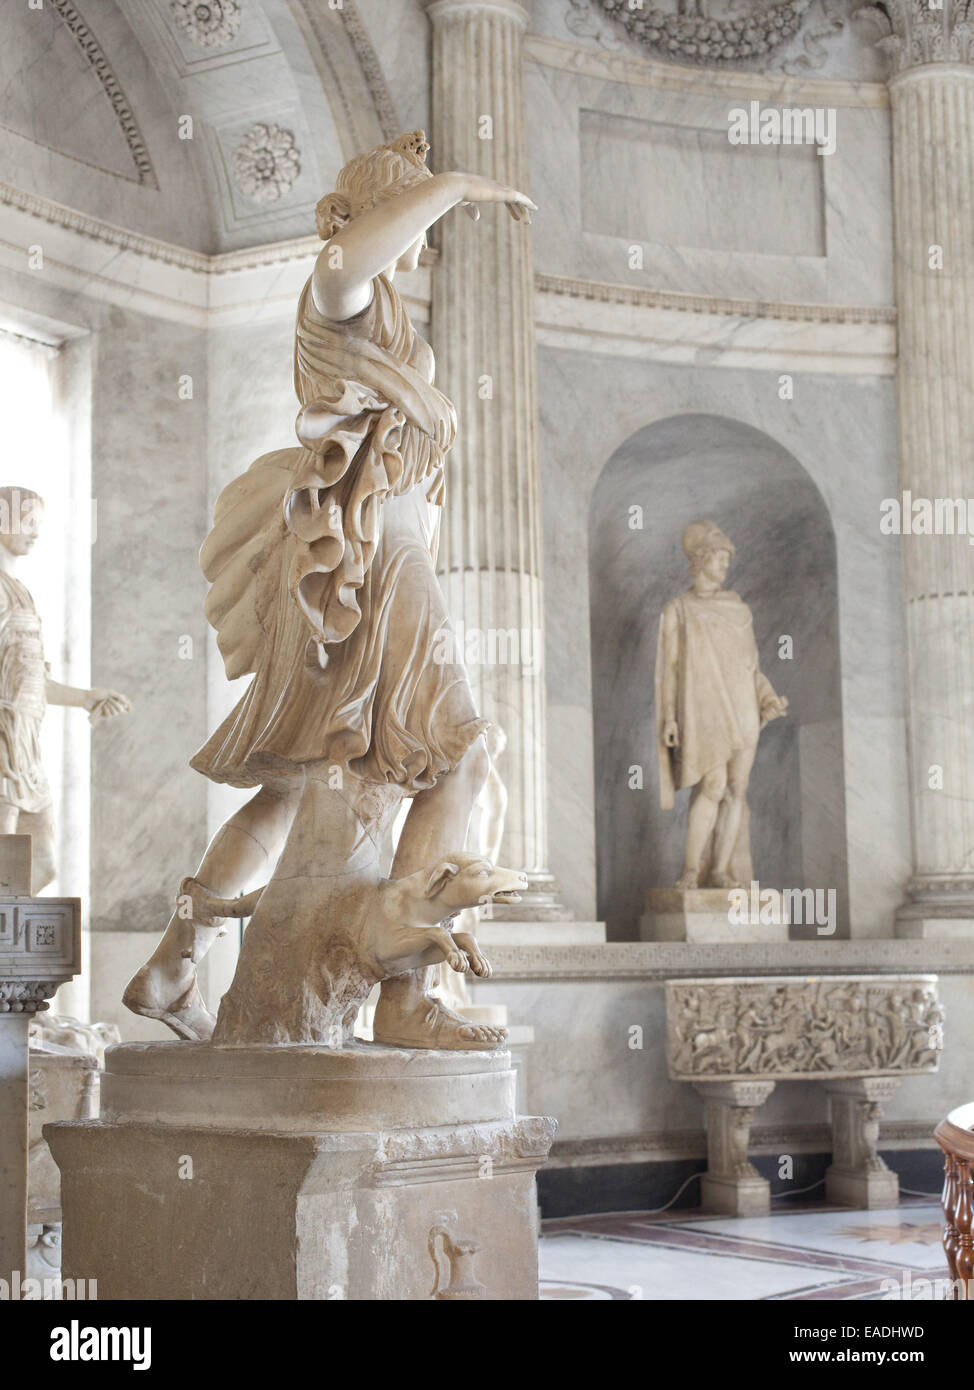 Antique Marble Sculptures In the Vatican - Stock Image